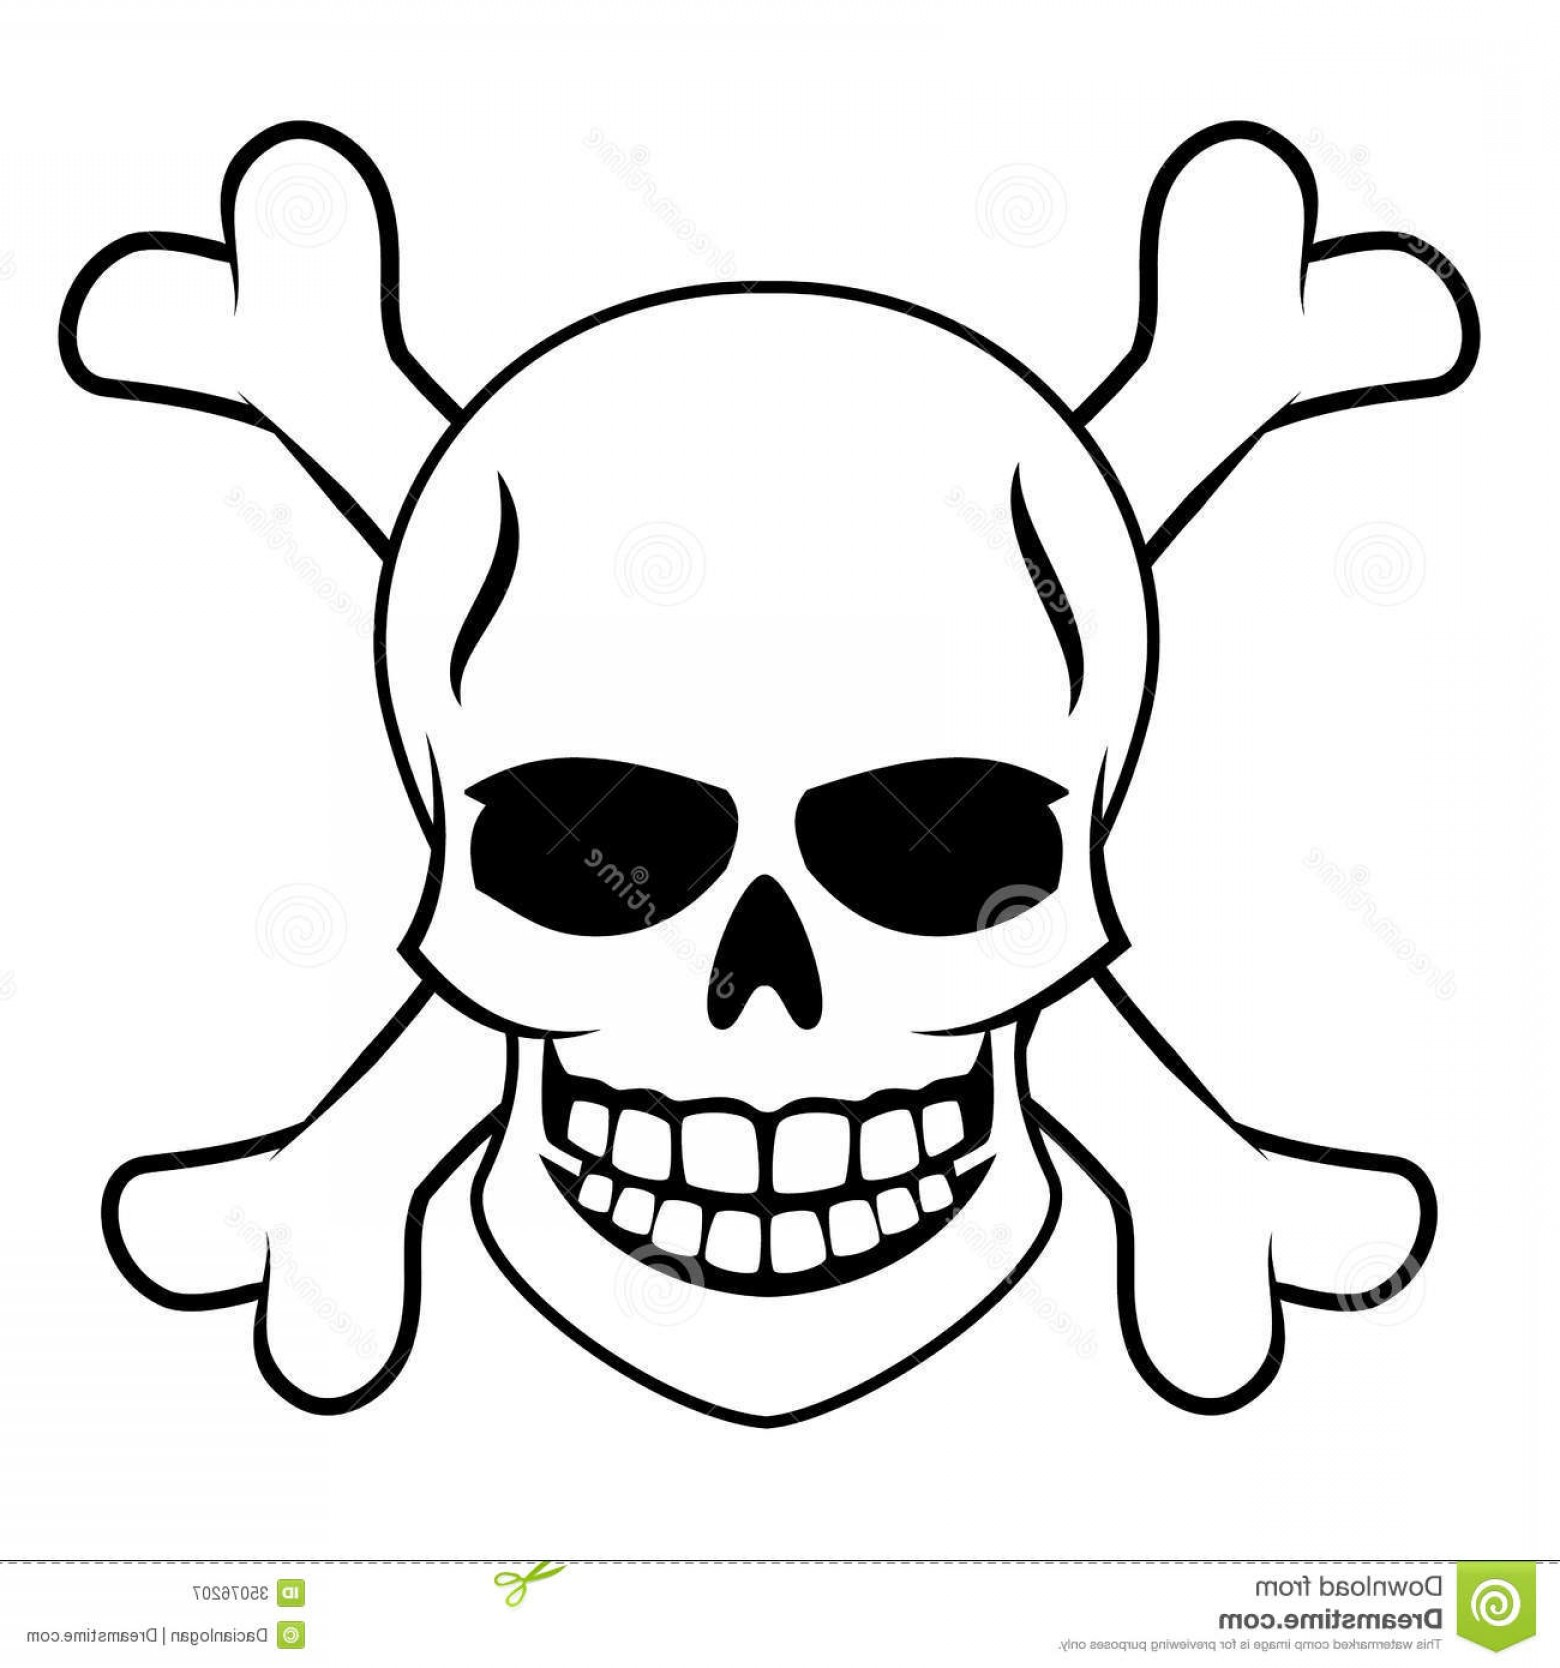 Skull ND Crossbones Vector: Royalty Free Stock Photography Skull Crossbones Vector Illustration Image